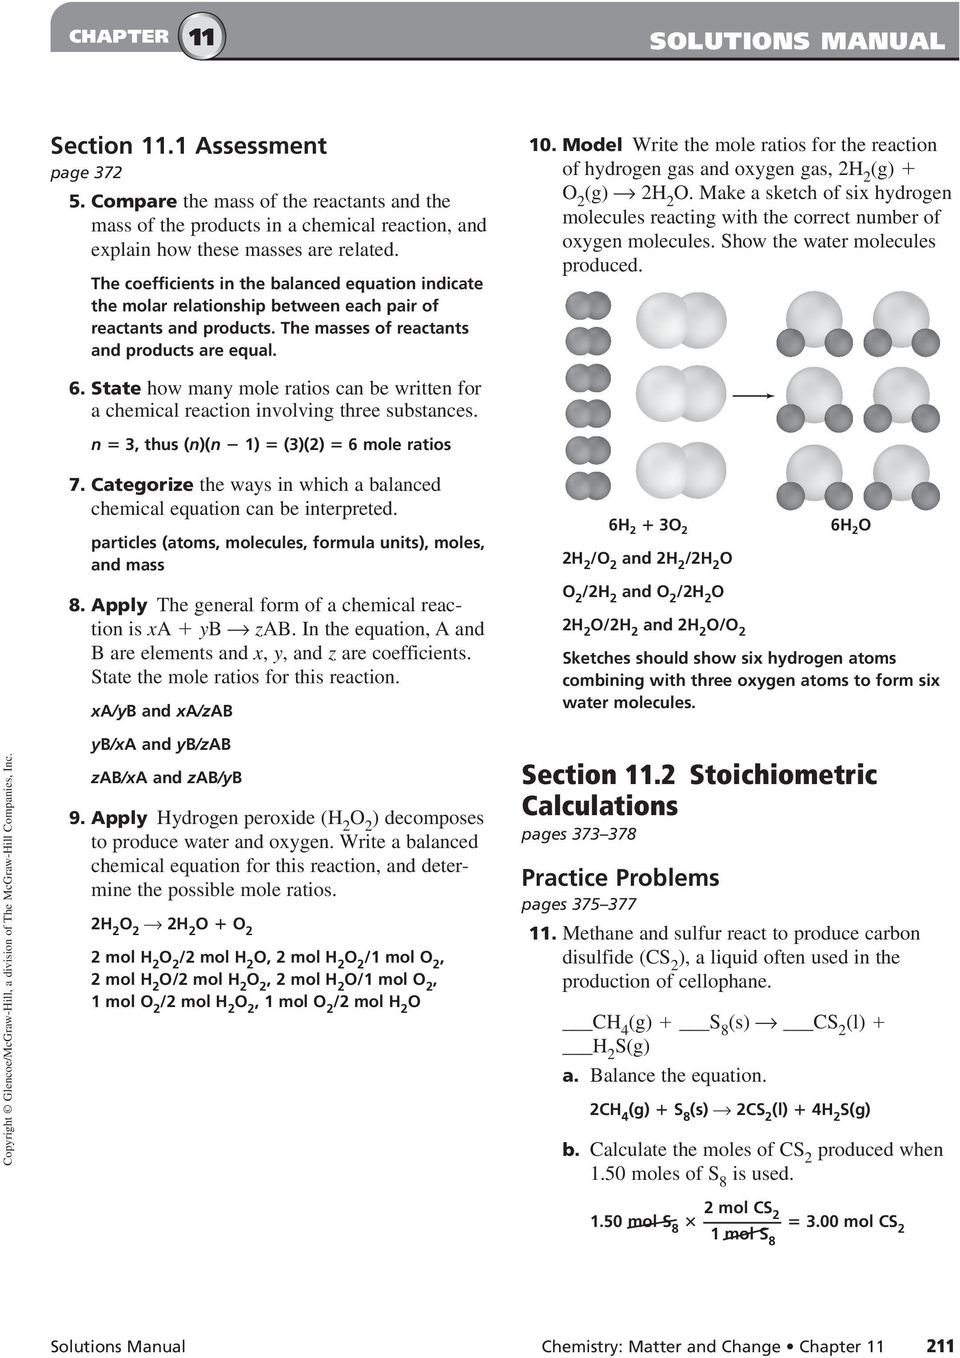 Mole Ratio Worksheet Answers Pogil - Worksheets for Education